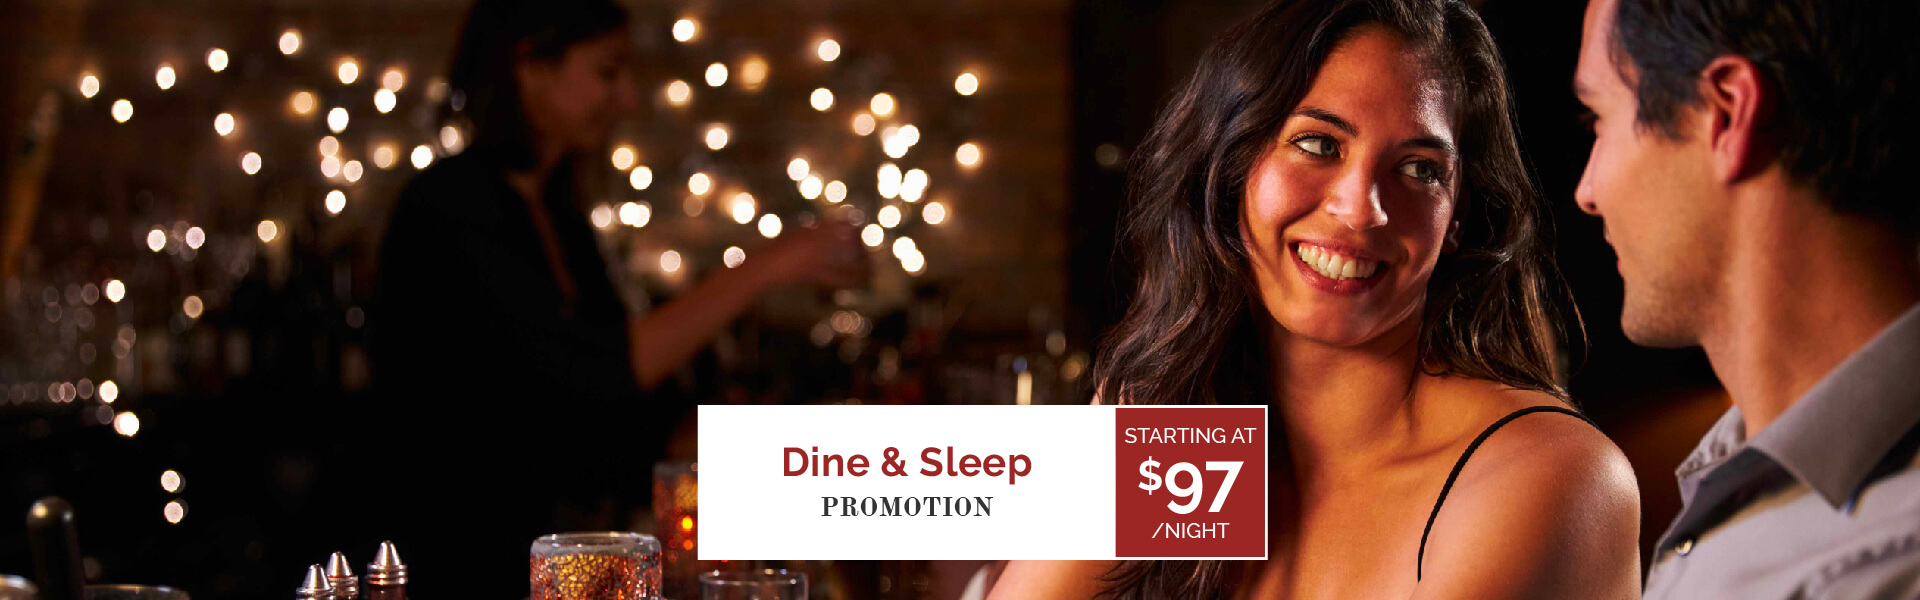 Dine & Sleep